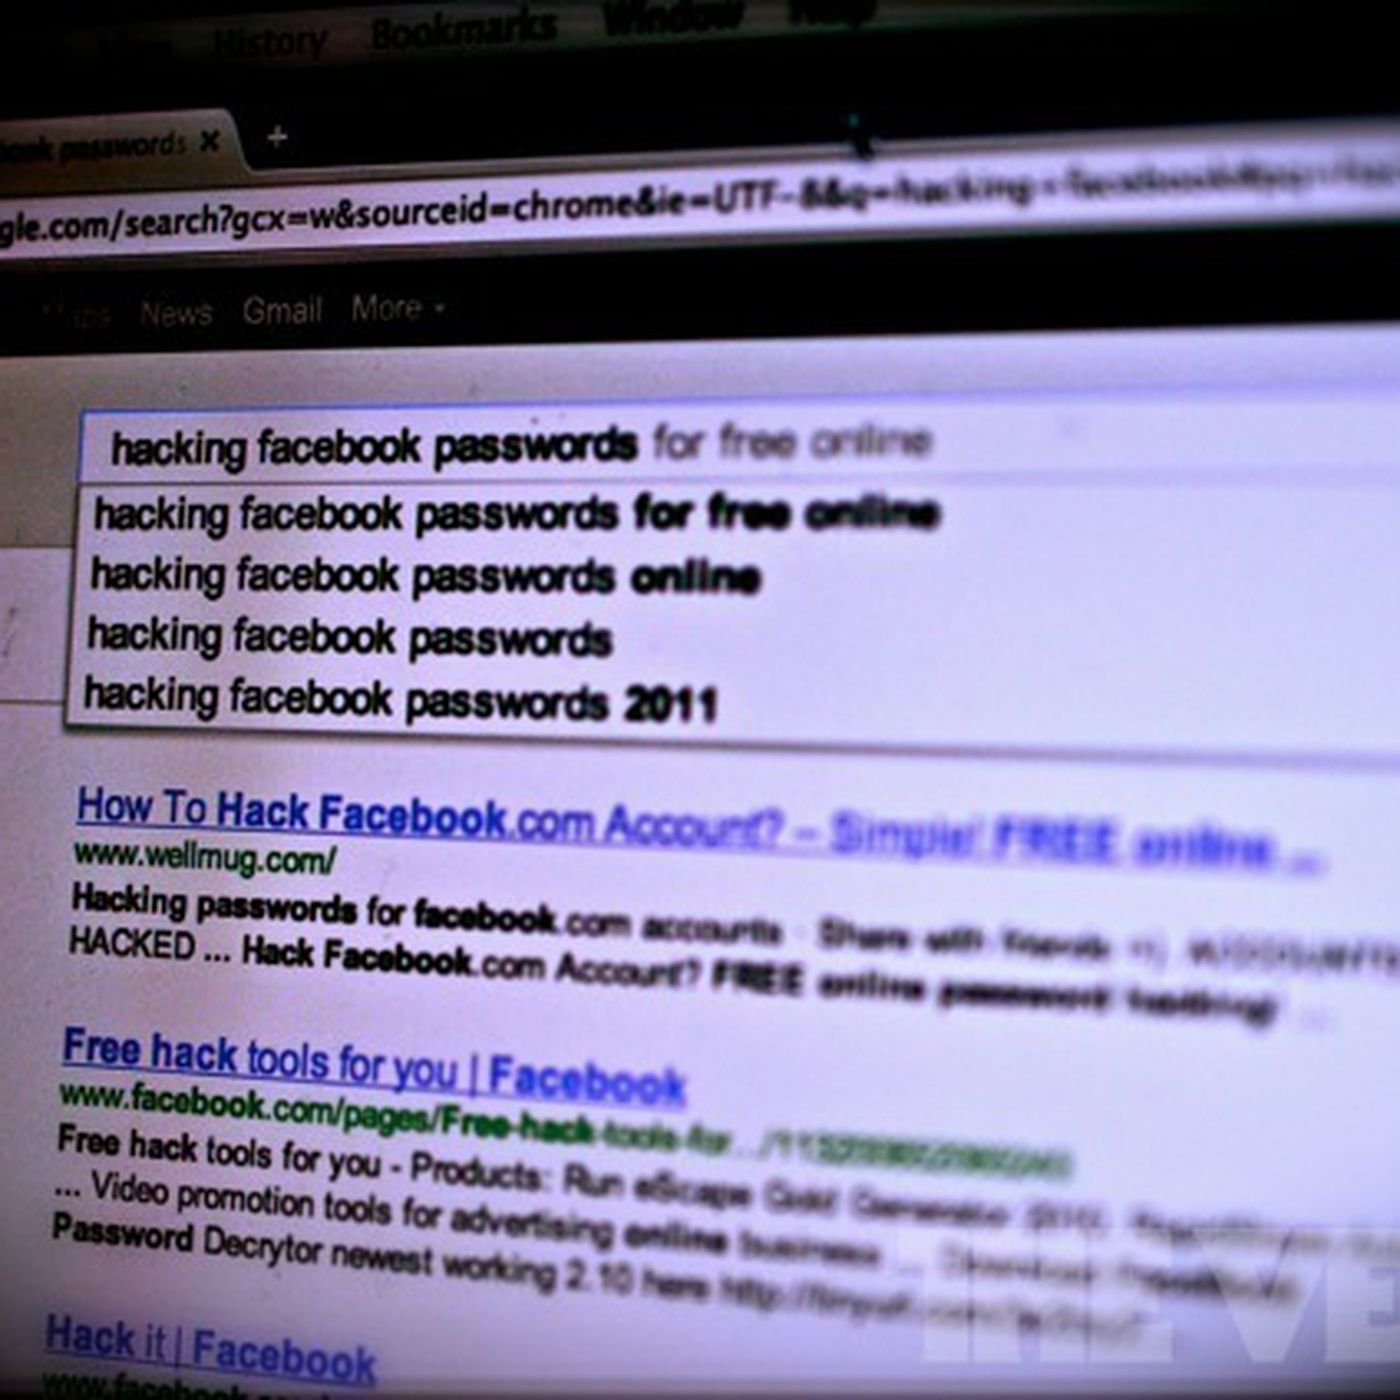 UK man receives one year sentence for hacking Facebook account - The